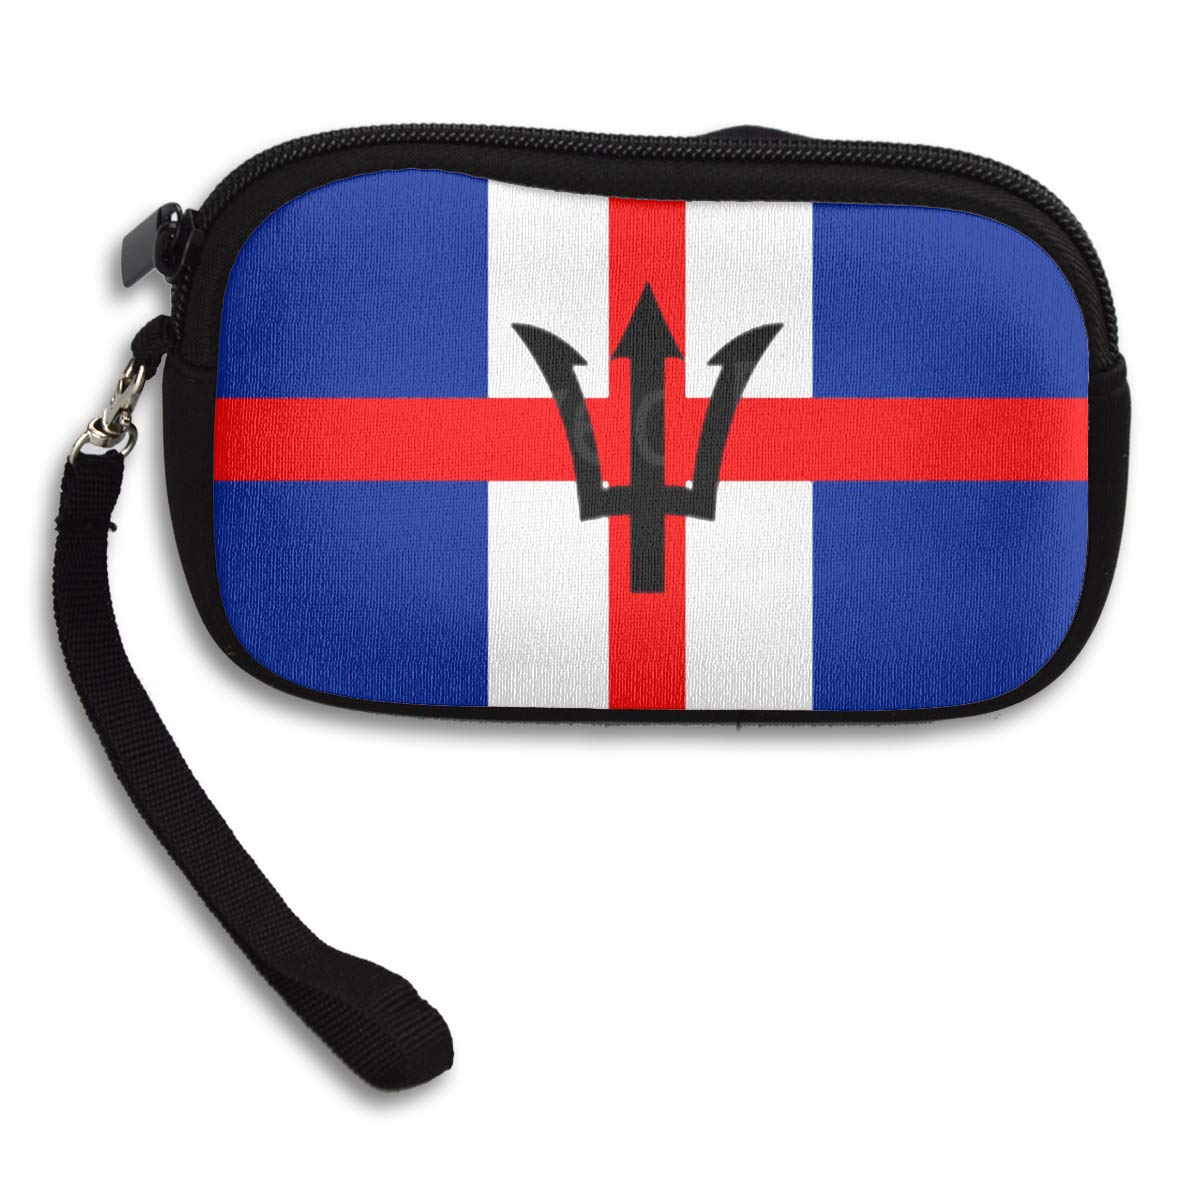 Mixed England And Barbados Flag Coin Purse Unique Change Purse,Make Up Bag,Cellphone Bag With Handle Purses For Women